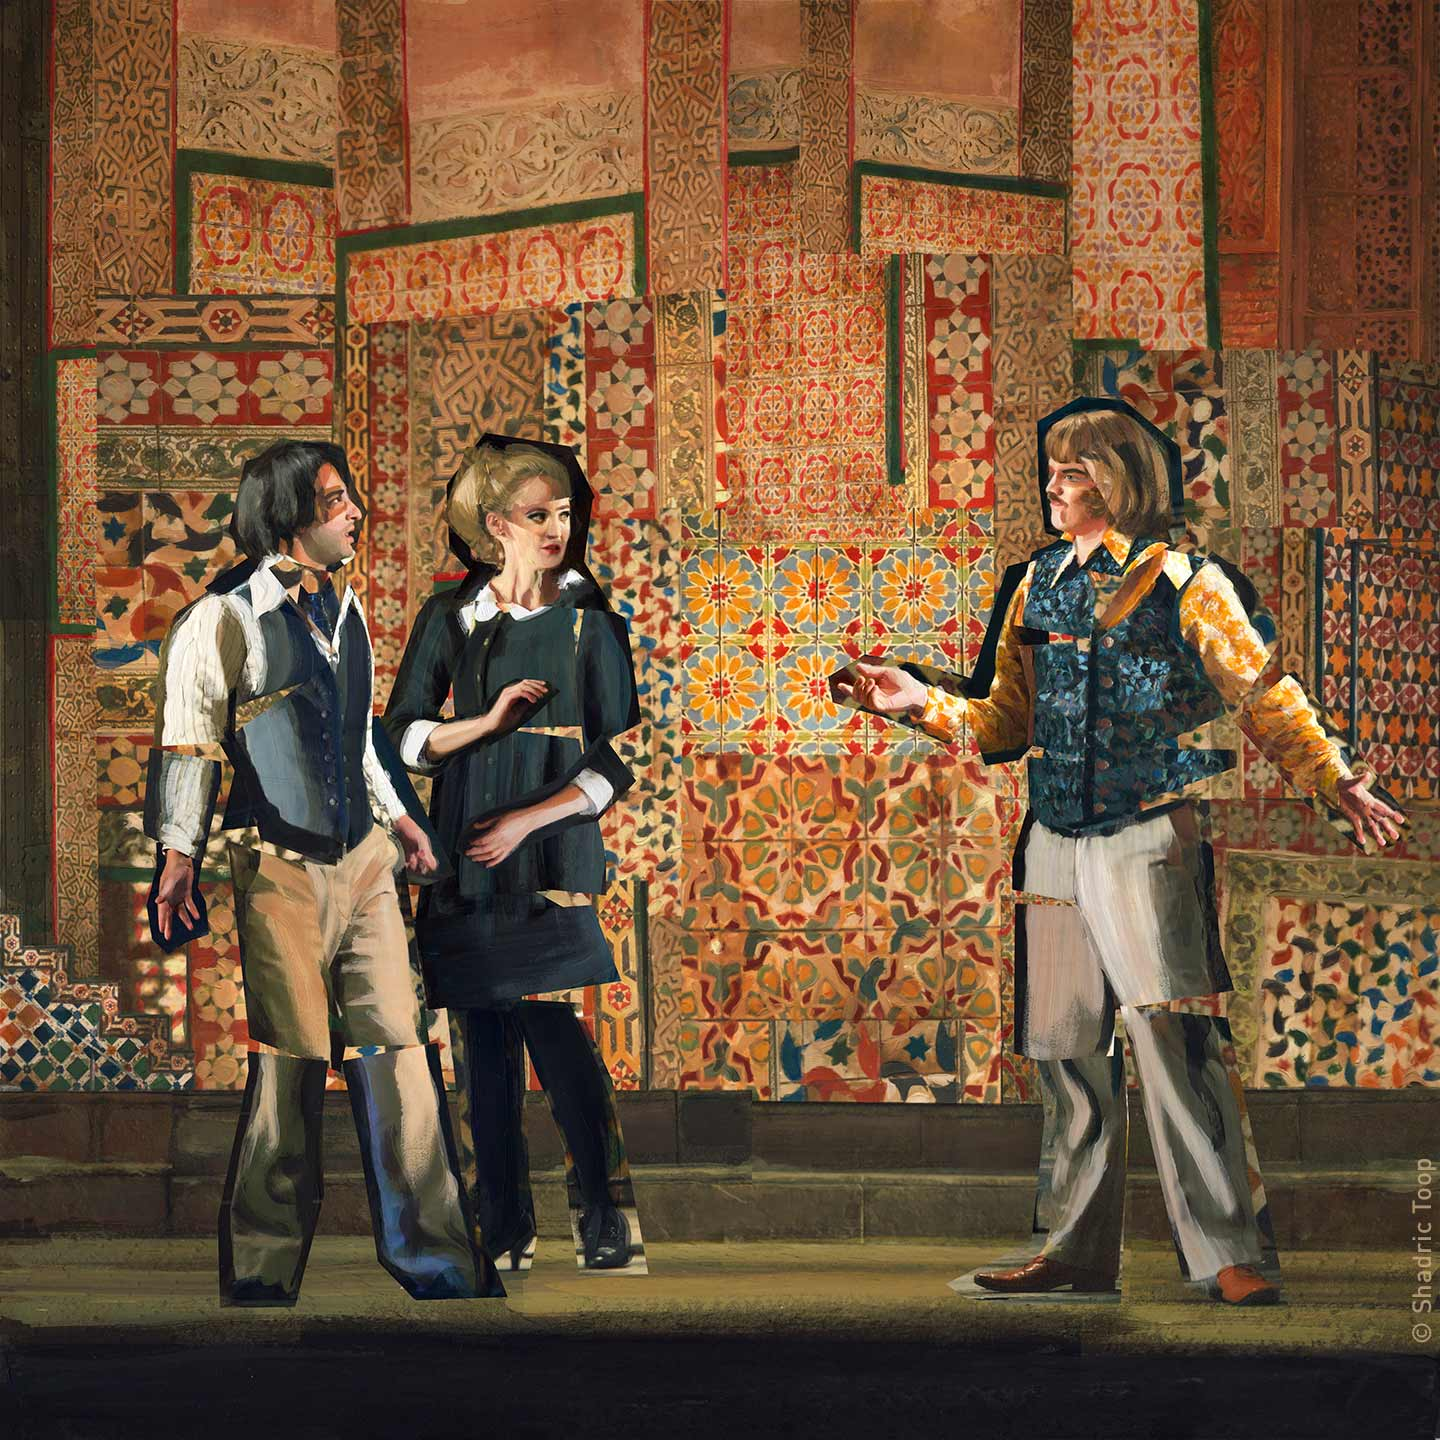 The Marriage of Figaro - Mozart - Glyndebourne Opera Cup - Painted Collage by Shadric Toop